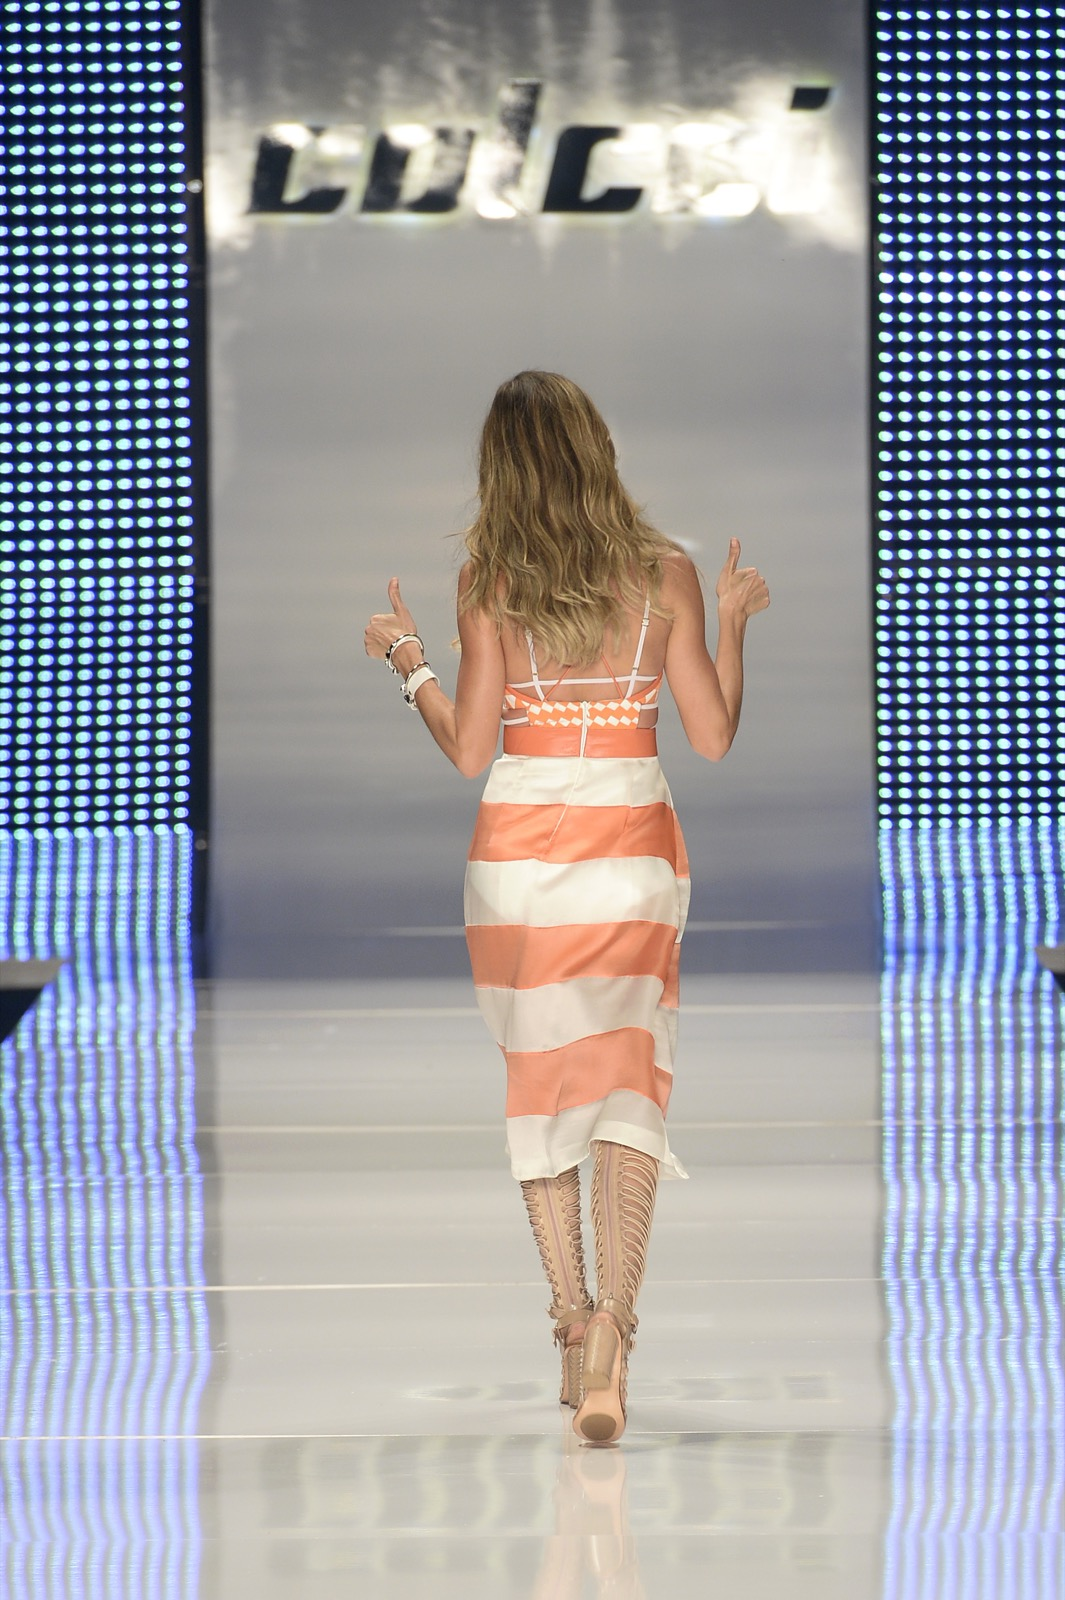 Gisele Bundchen walks the runway during the Colcci show at SPFW Summer 2016 in Sao Paulo, Brazil, Wednesday. Fernanda Calfat/Getty Images